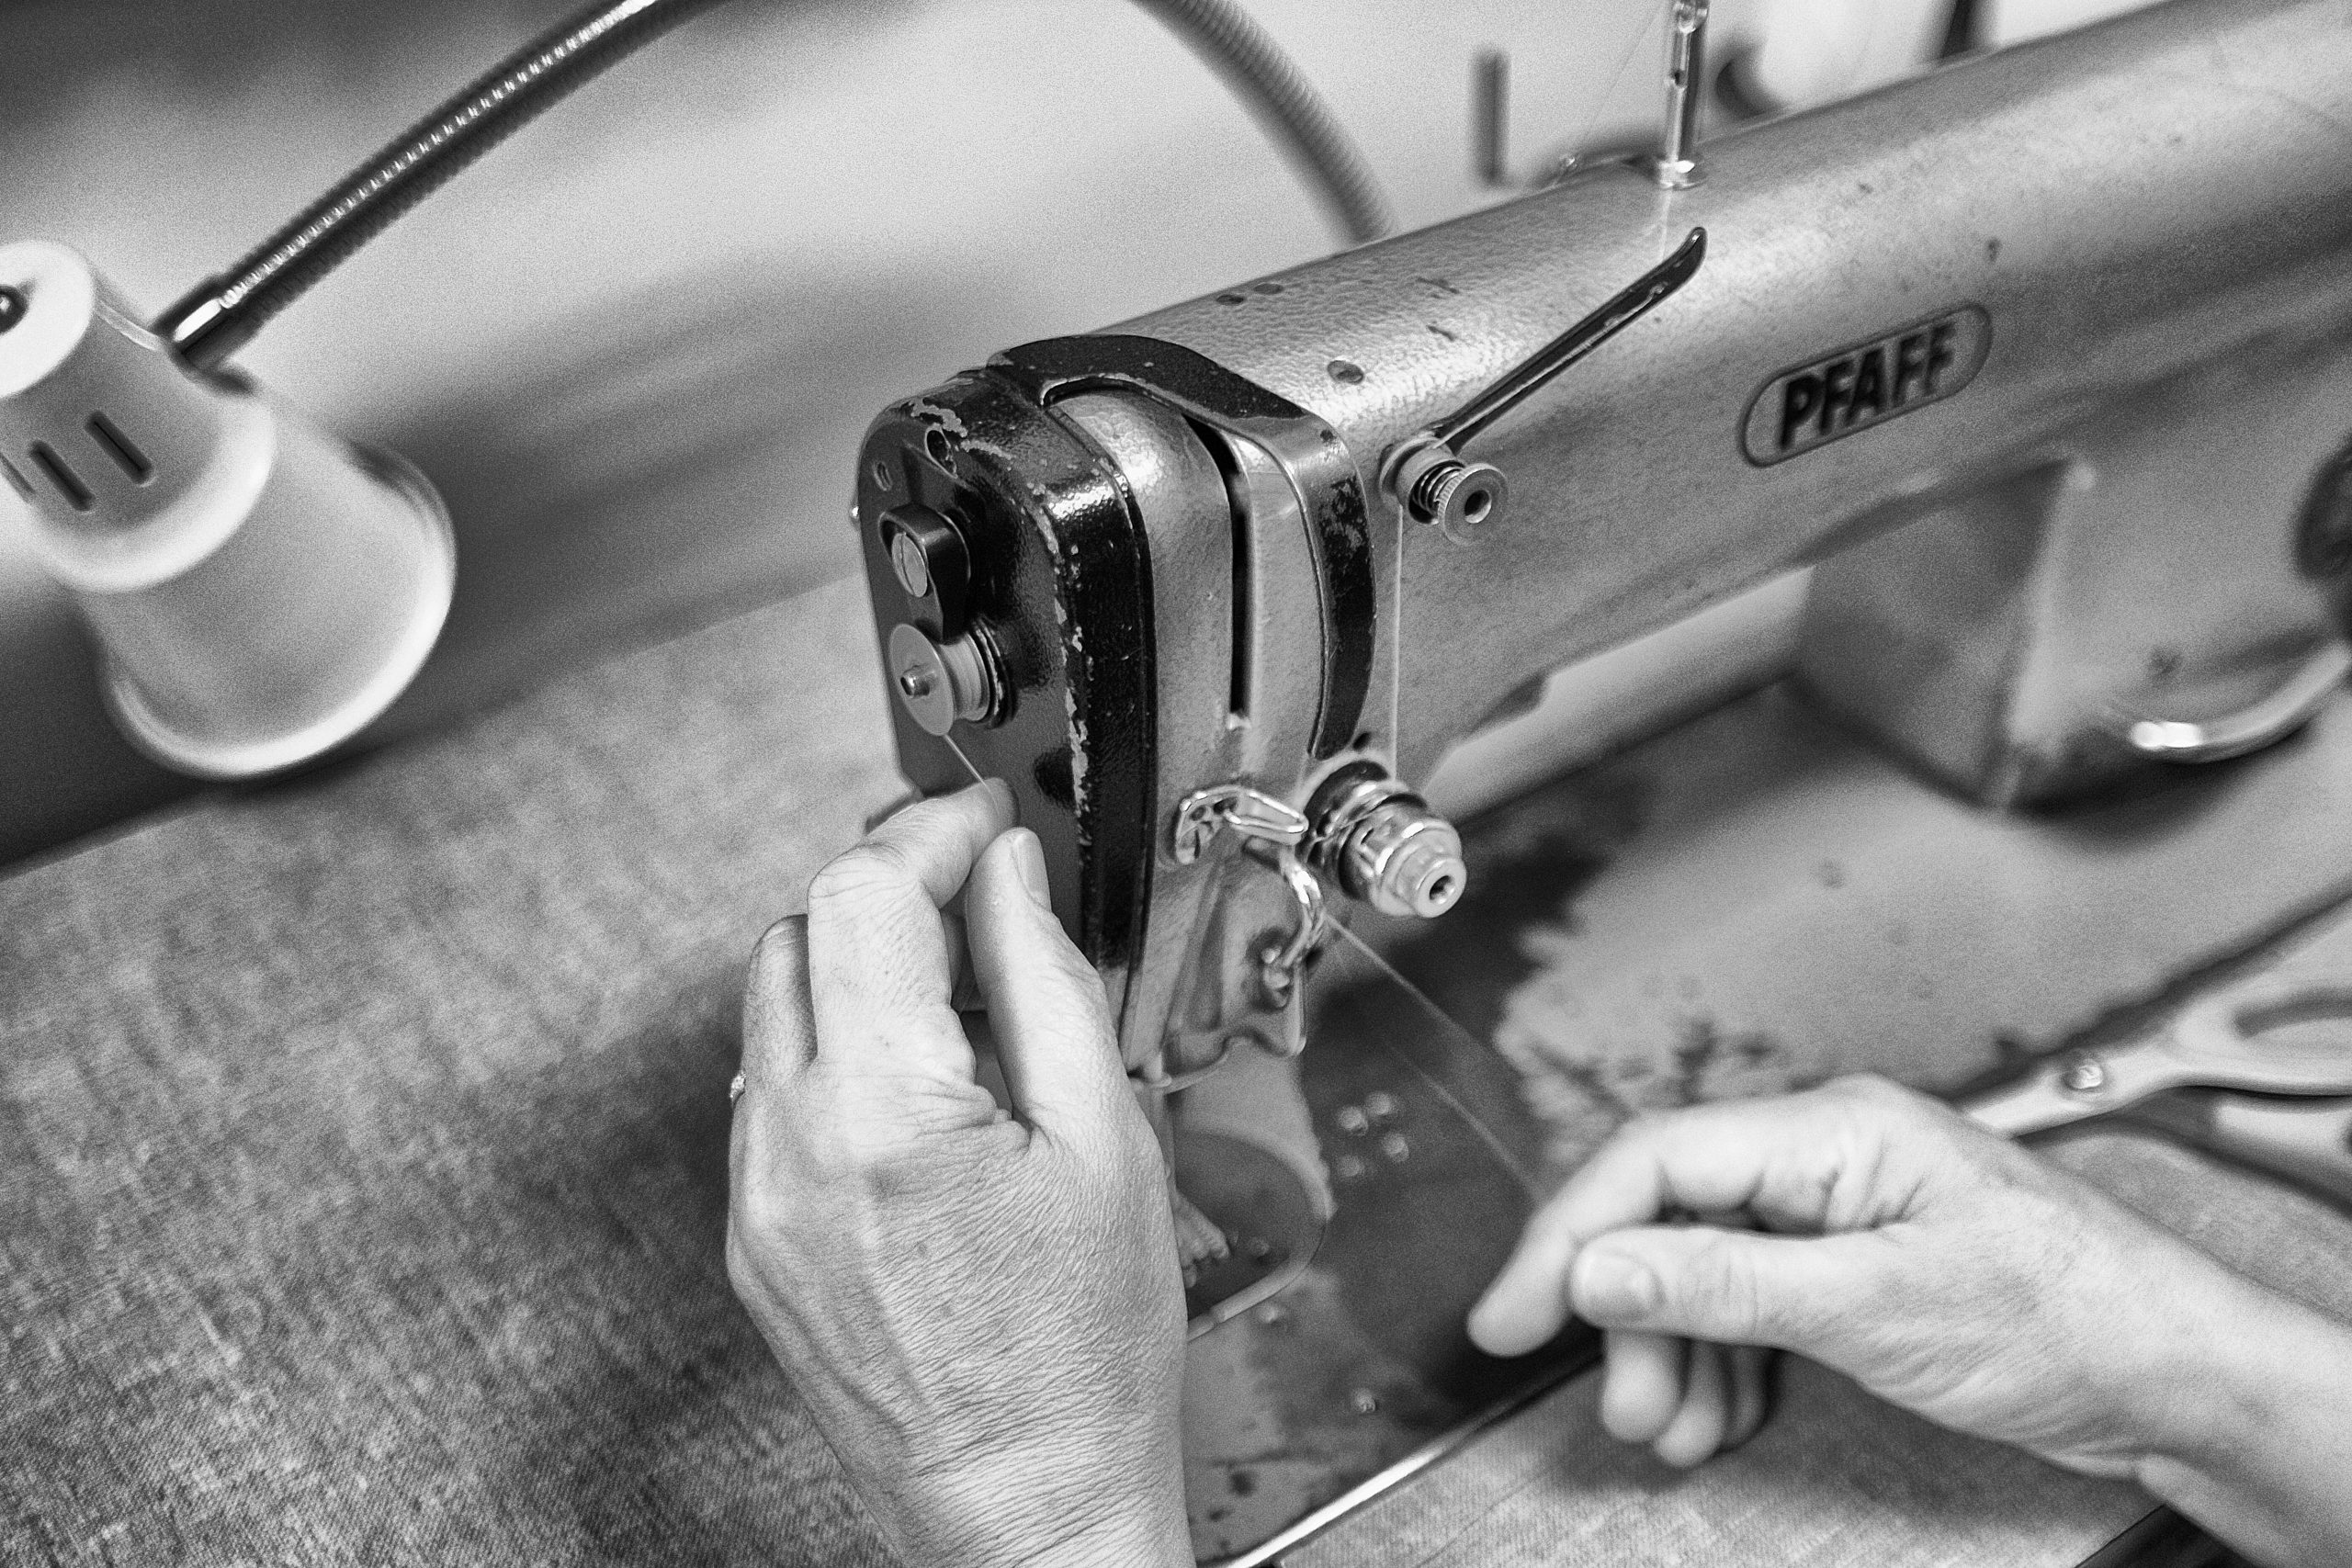 hands working on a tailoring machine-skilling